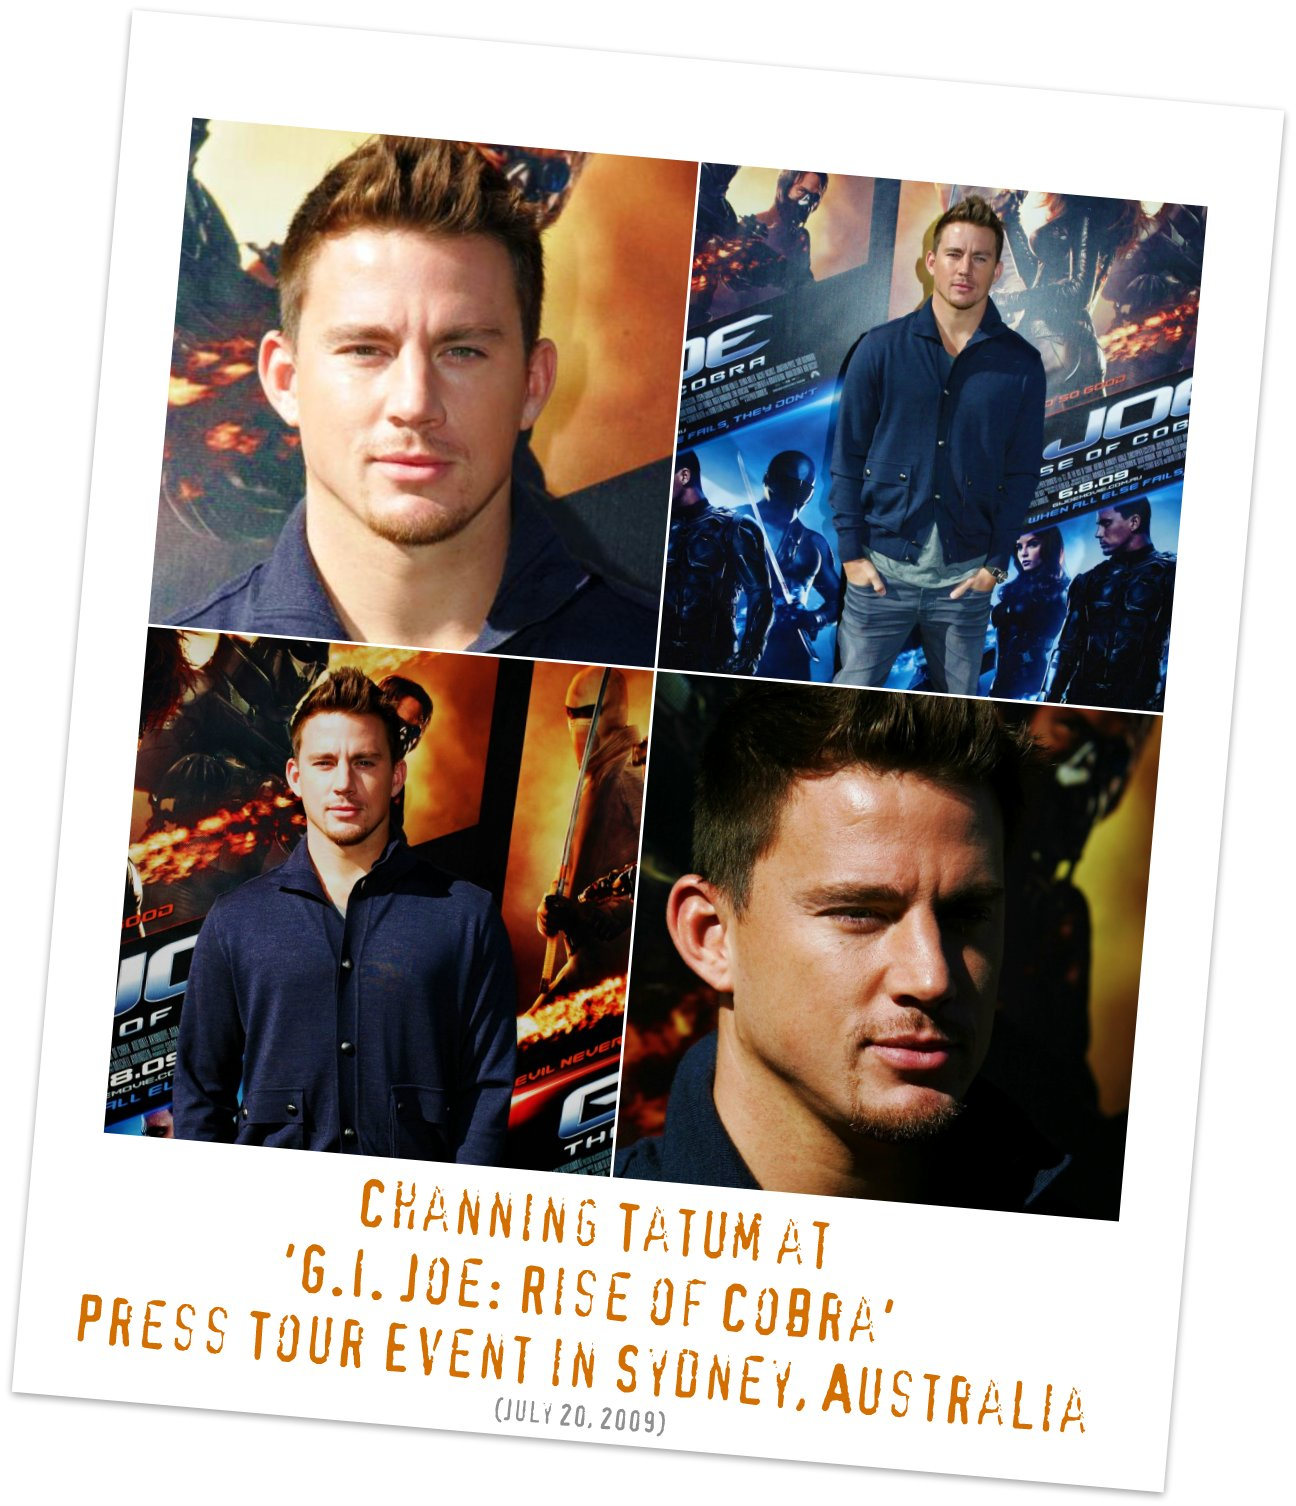 Channing Tatum on the 'G.I. Joe: Rise of Cobra' Press Tour